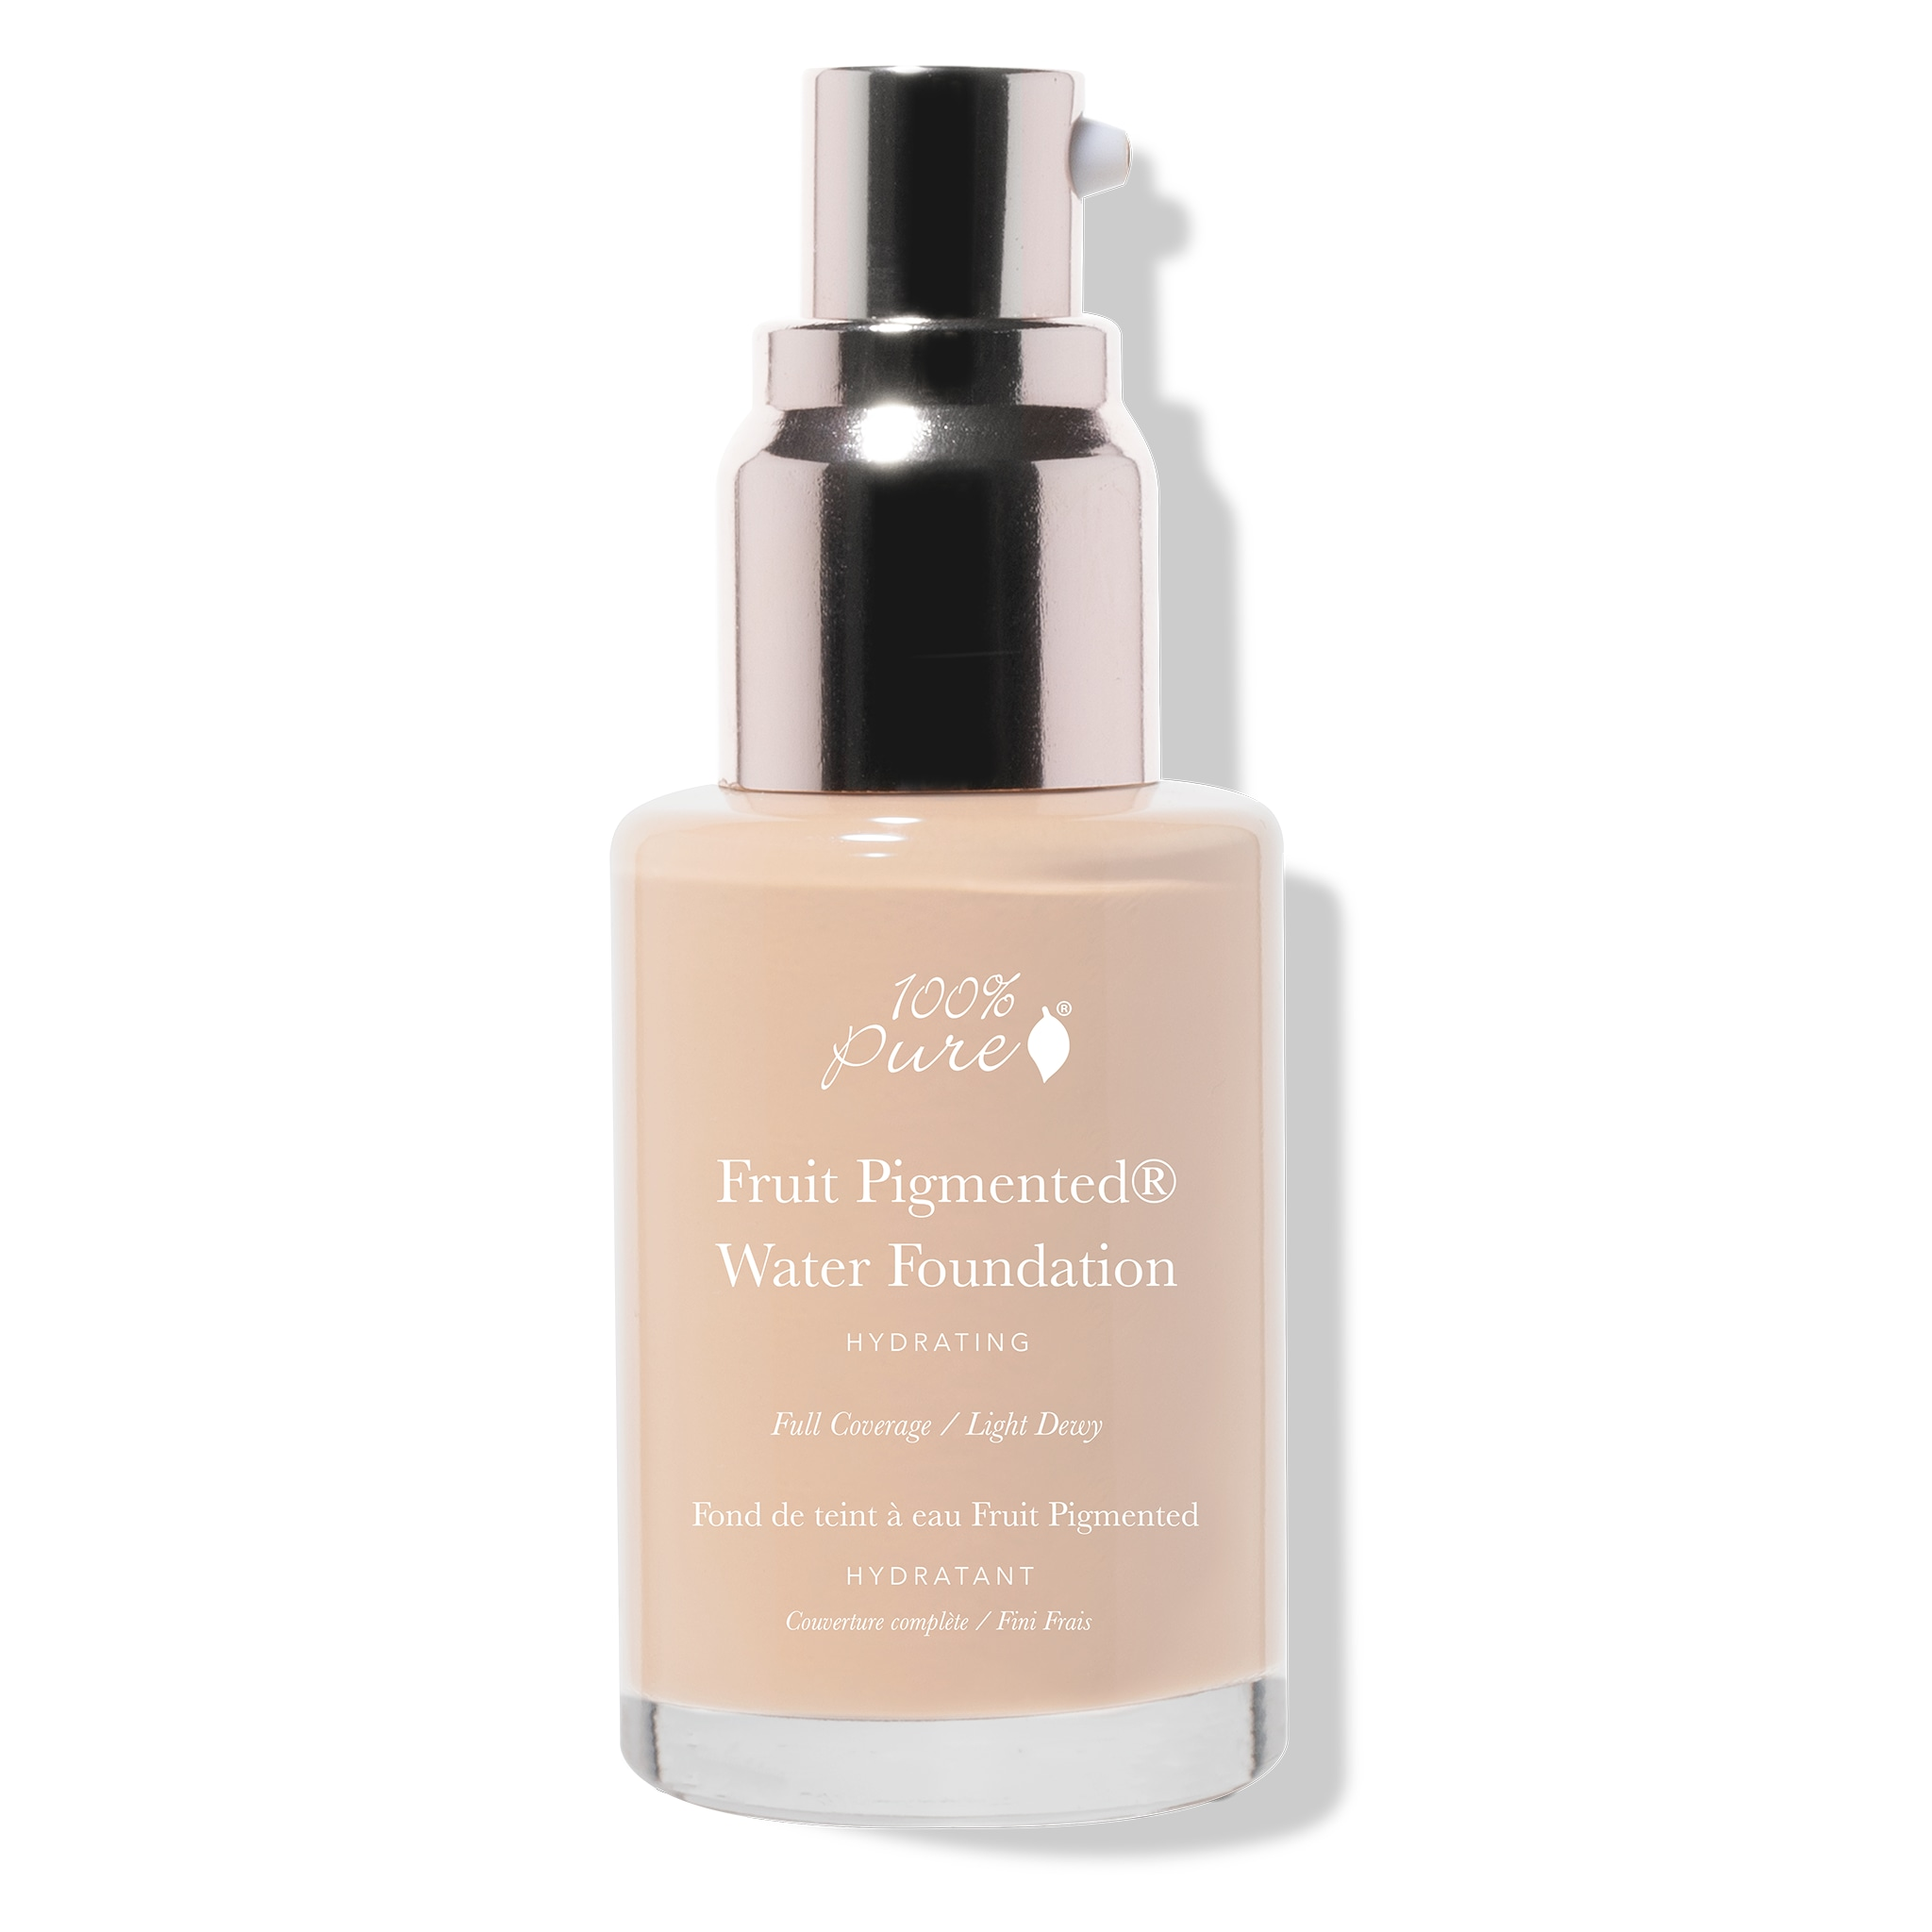 Fruit Pigmented Full Erage Water Foundation 100 Pure